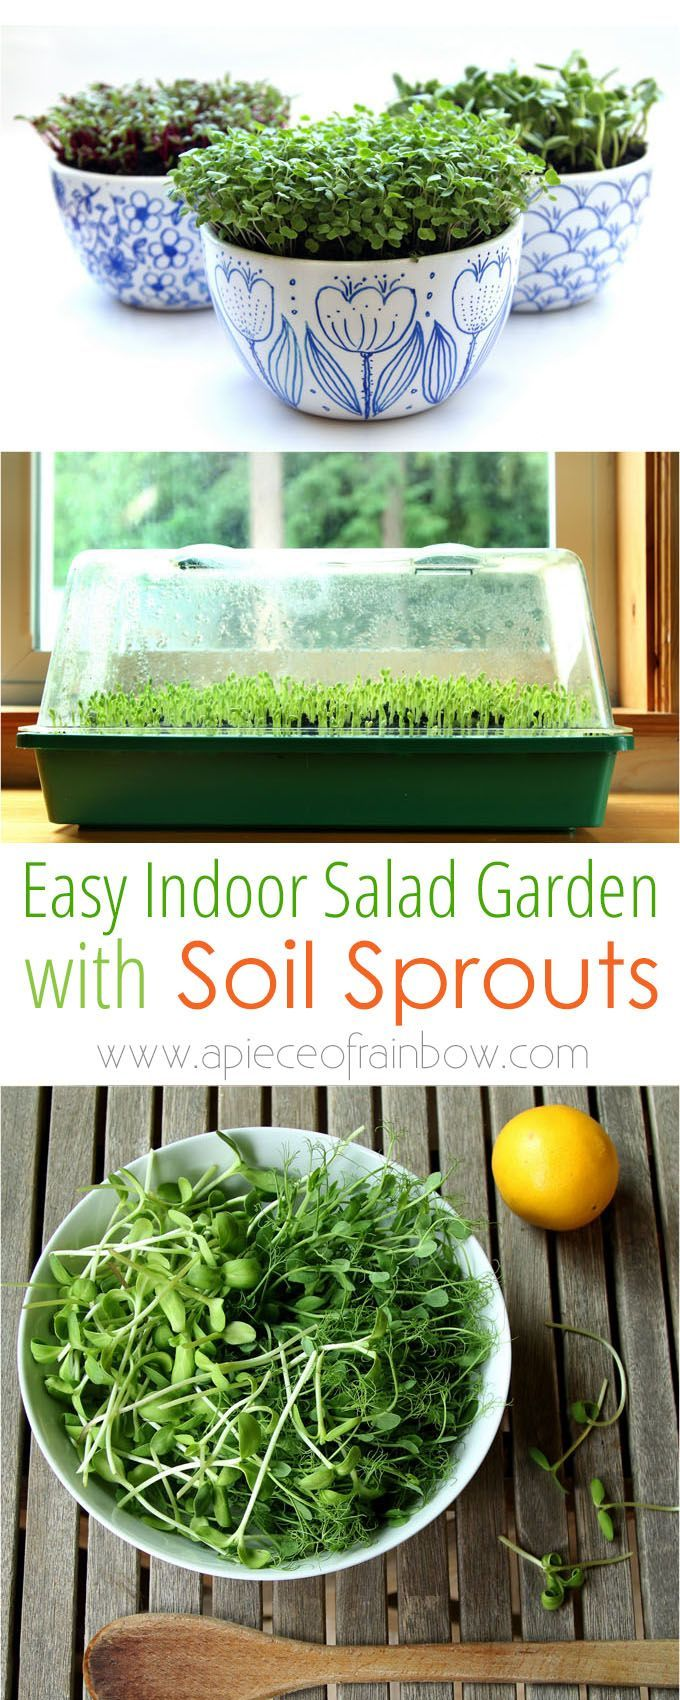 Grow an indoor salad garden with soil sprouts page 2 of 2 garden how to grow soil sprouts an easy method to grow nutritious sprouts and baby greens workwithnaturefo